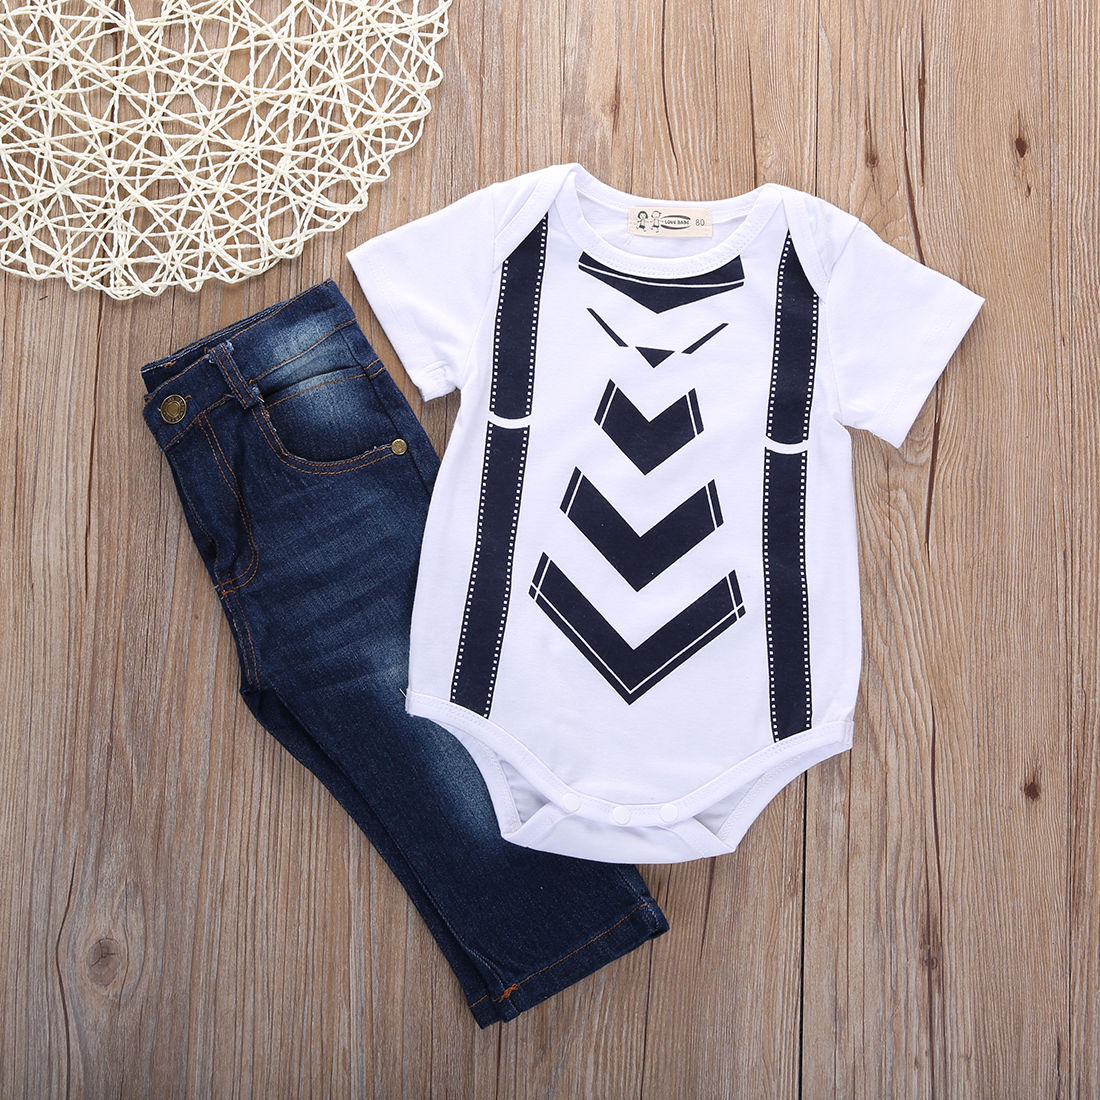 Infant Baby Boy Girl Kids Jeans Clothes Summer T-shirt Tops+Pants Outfit Costume